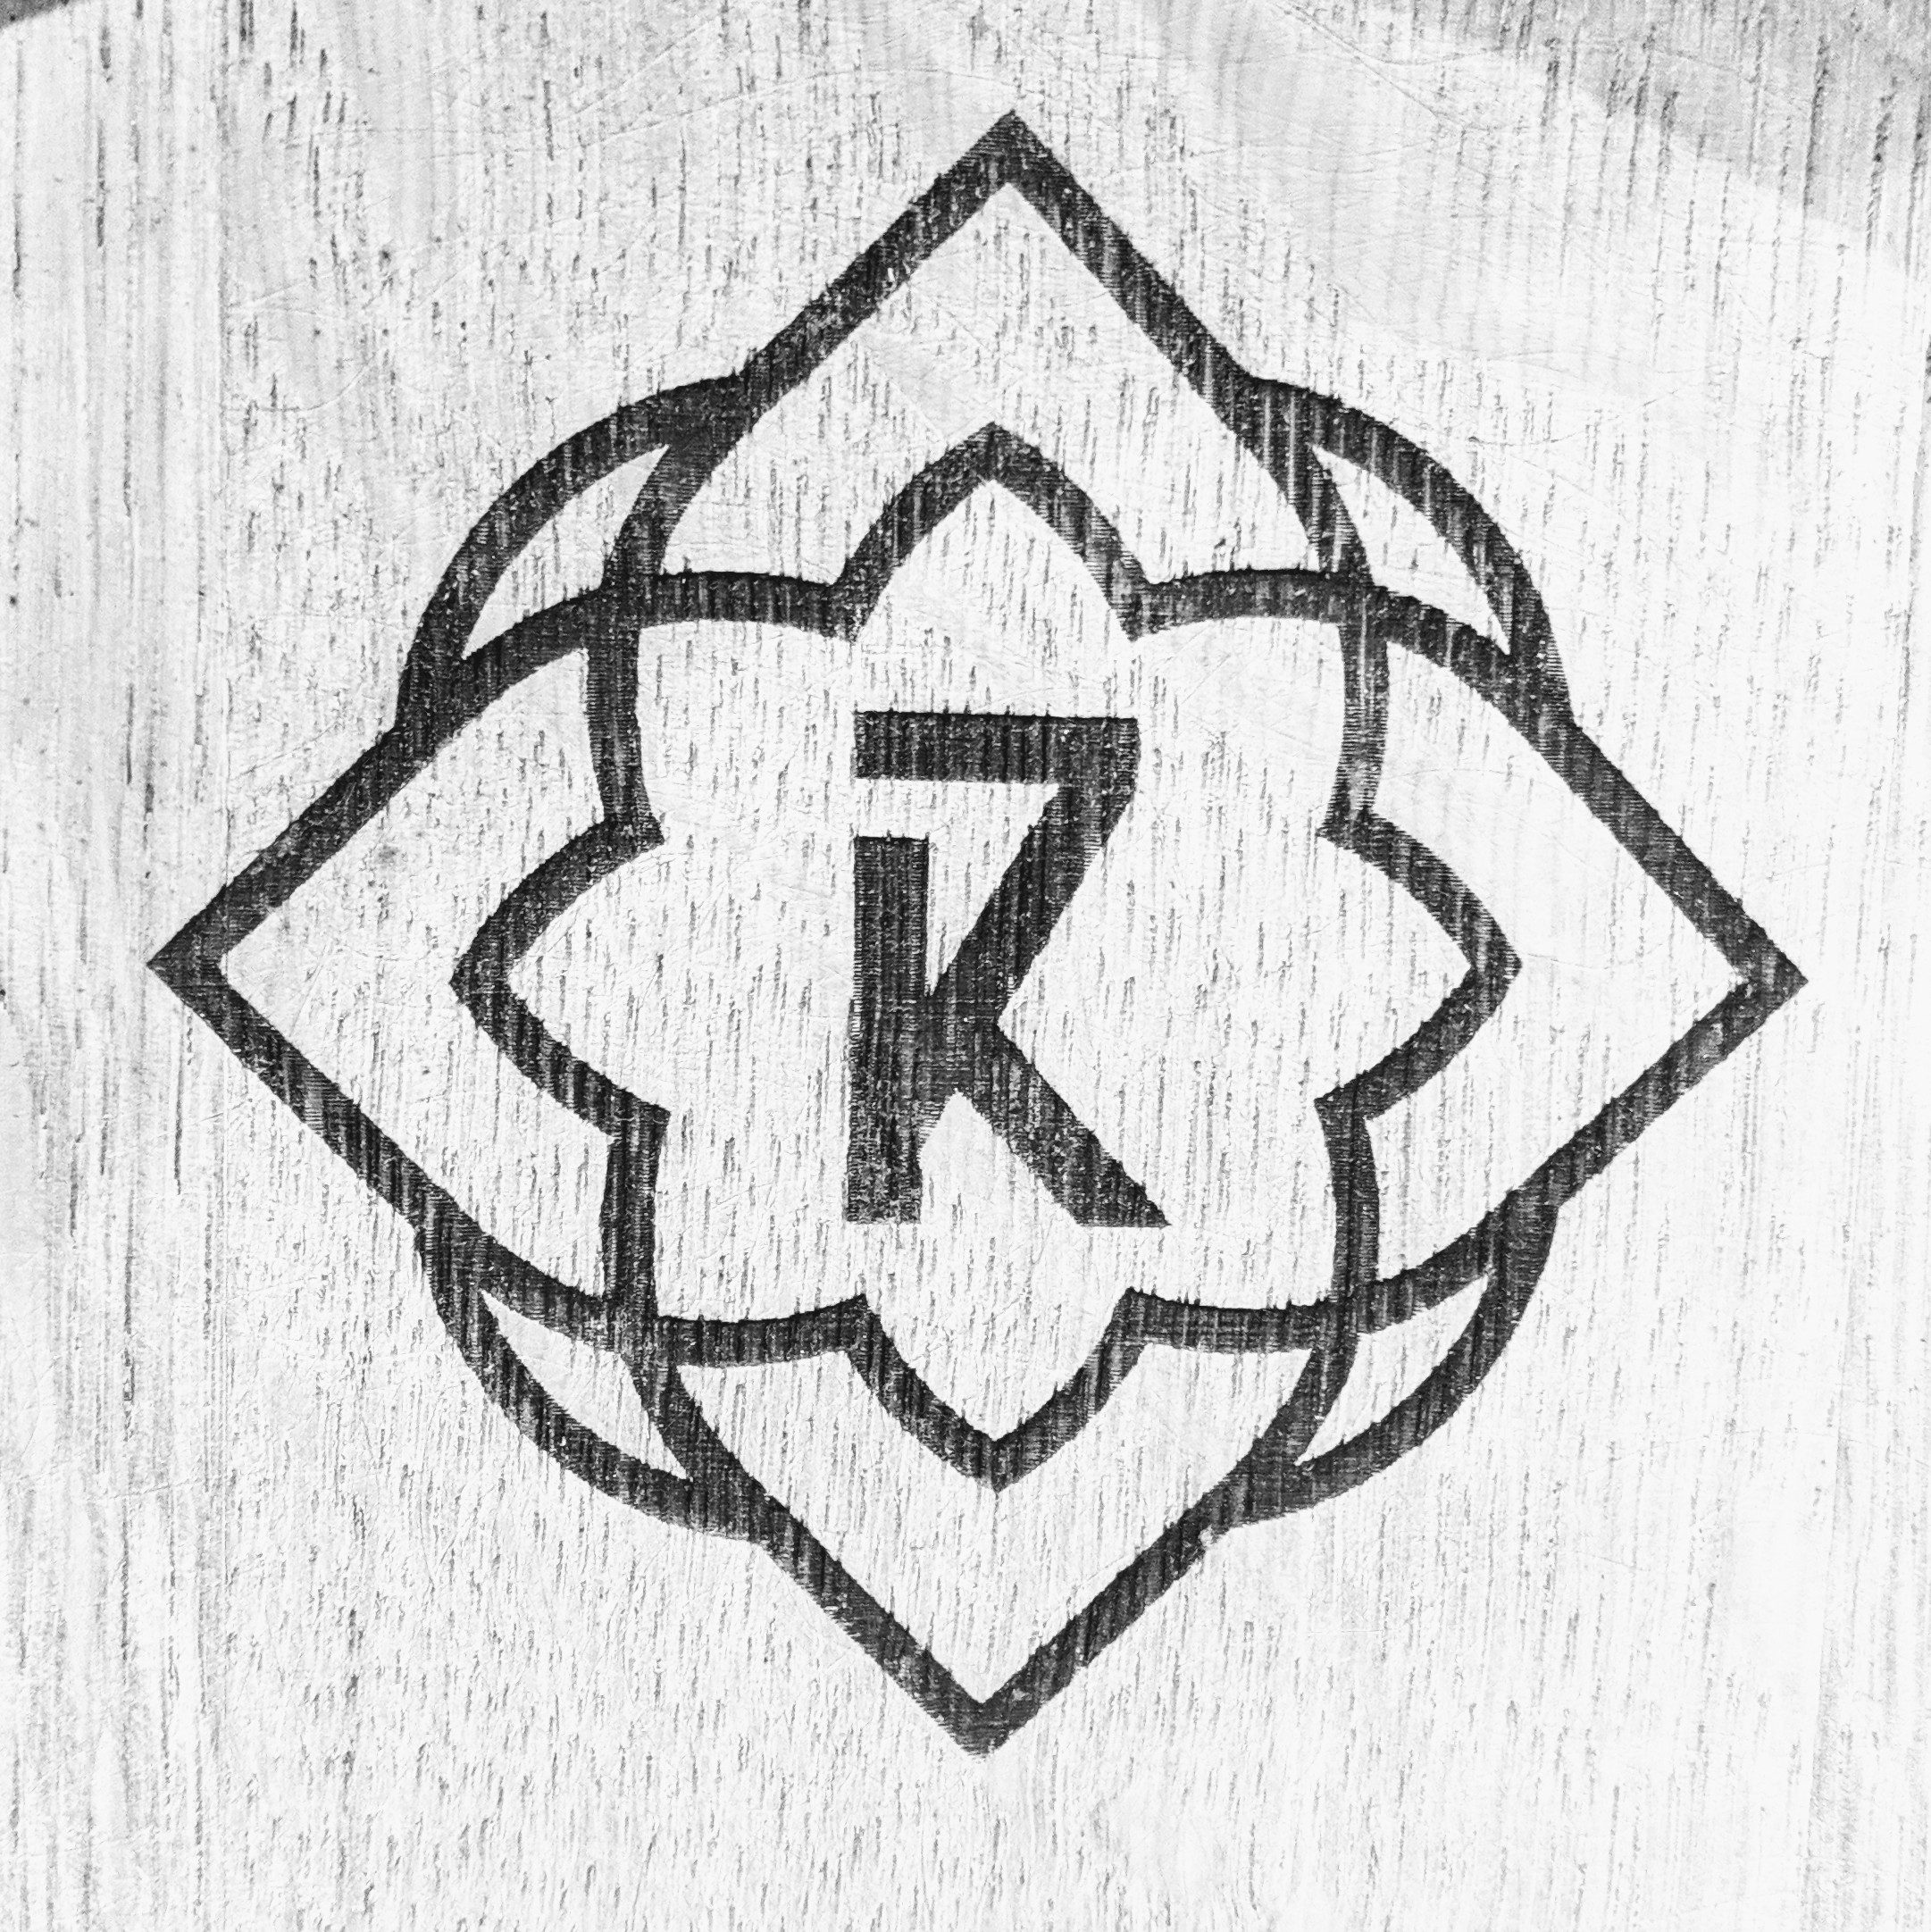 A geometric flower shape that is the logo of 7K Distillery